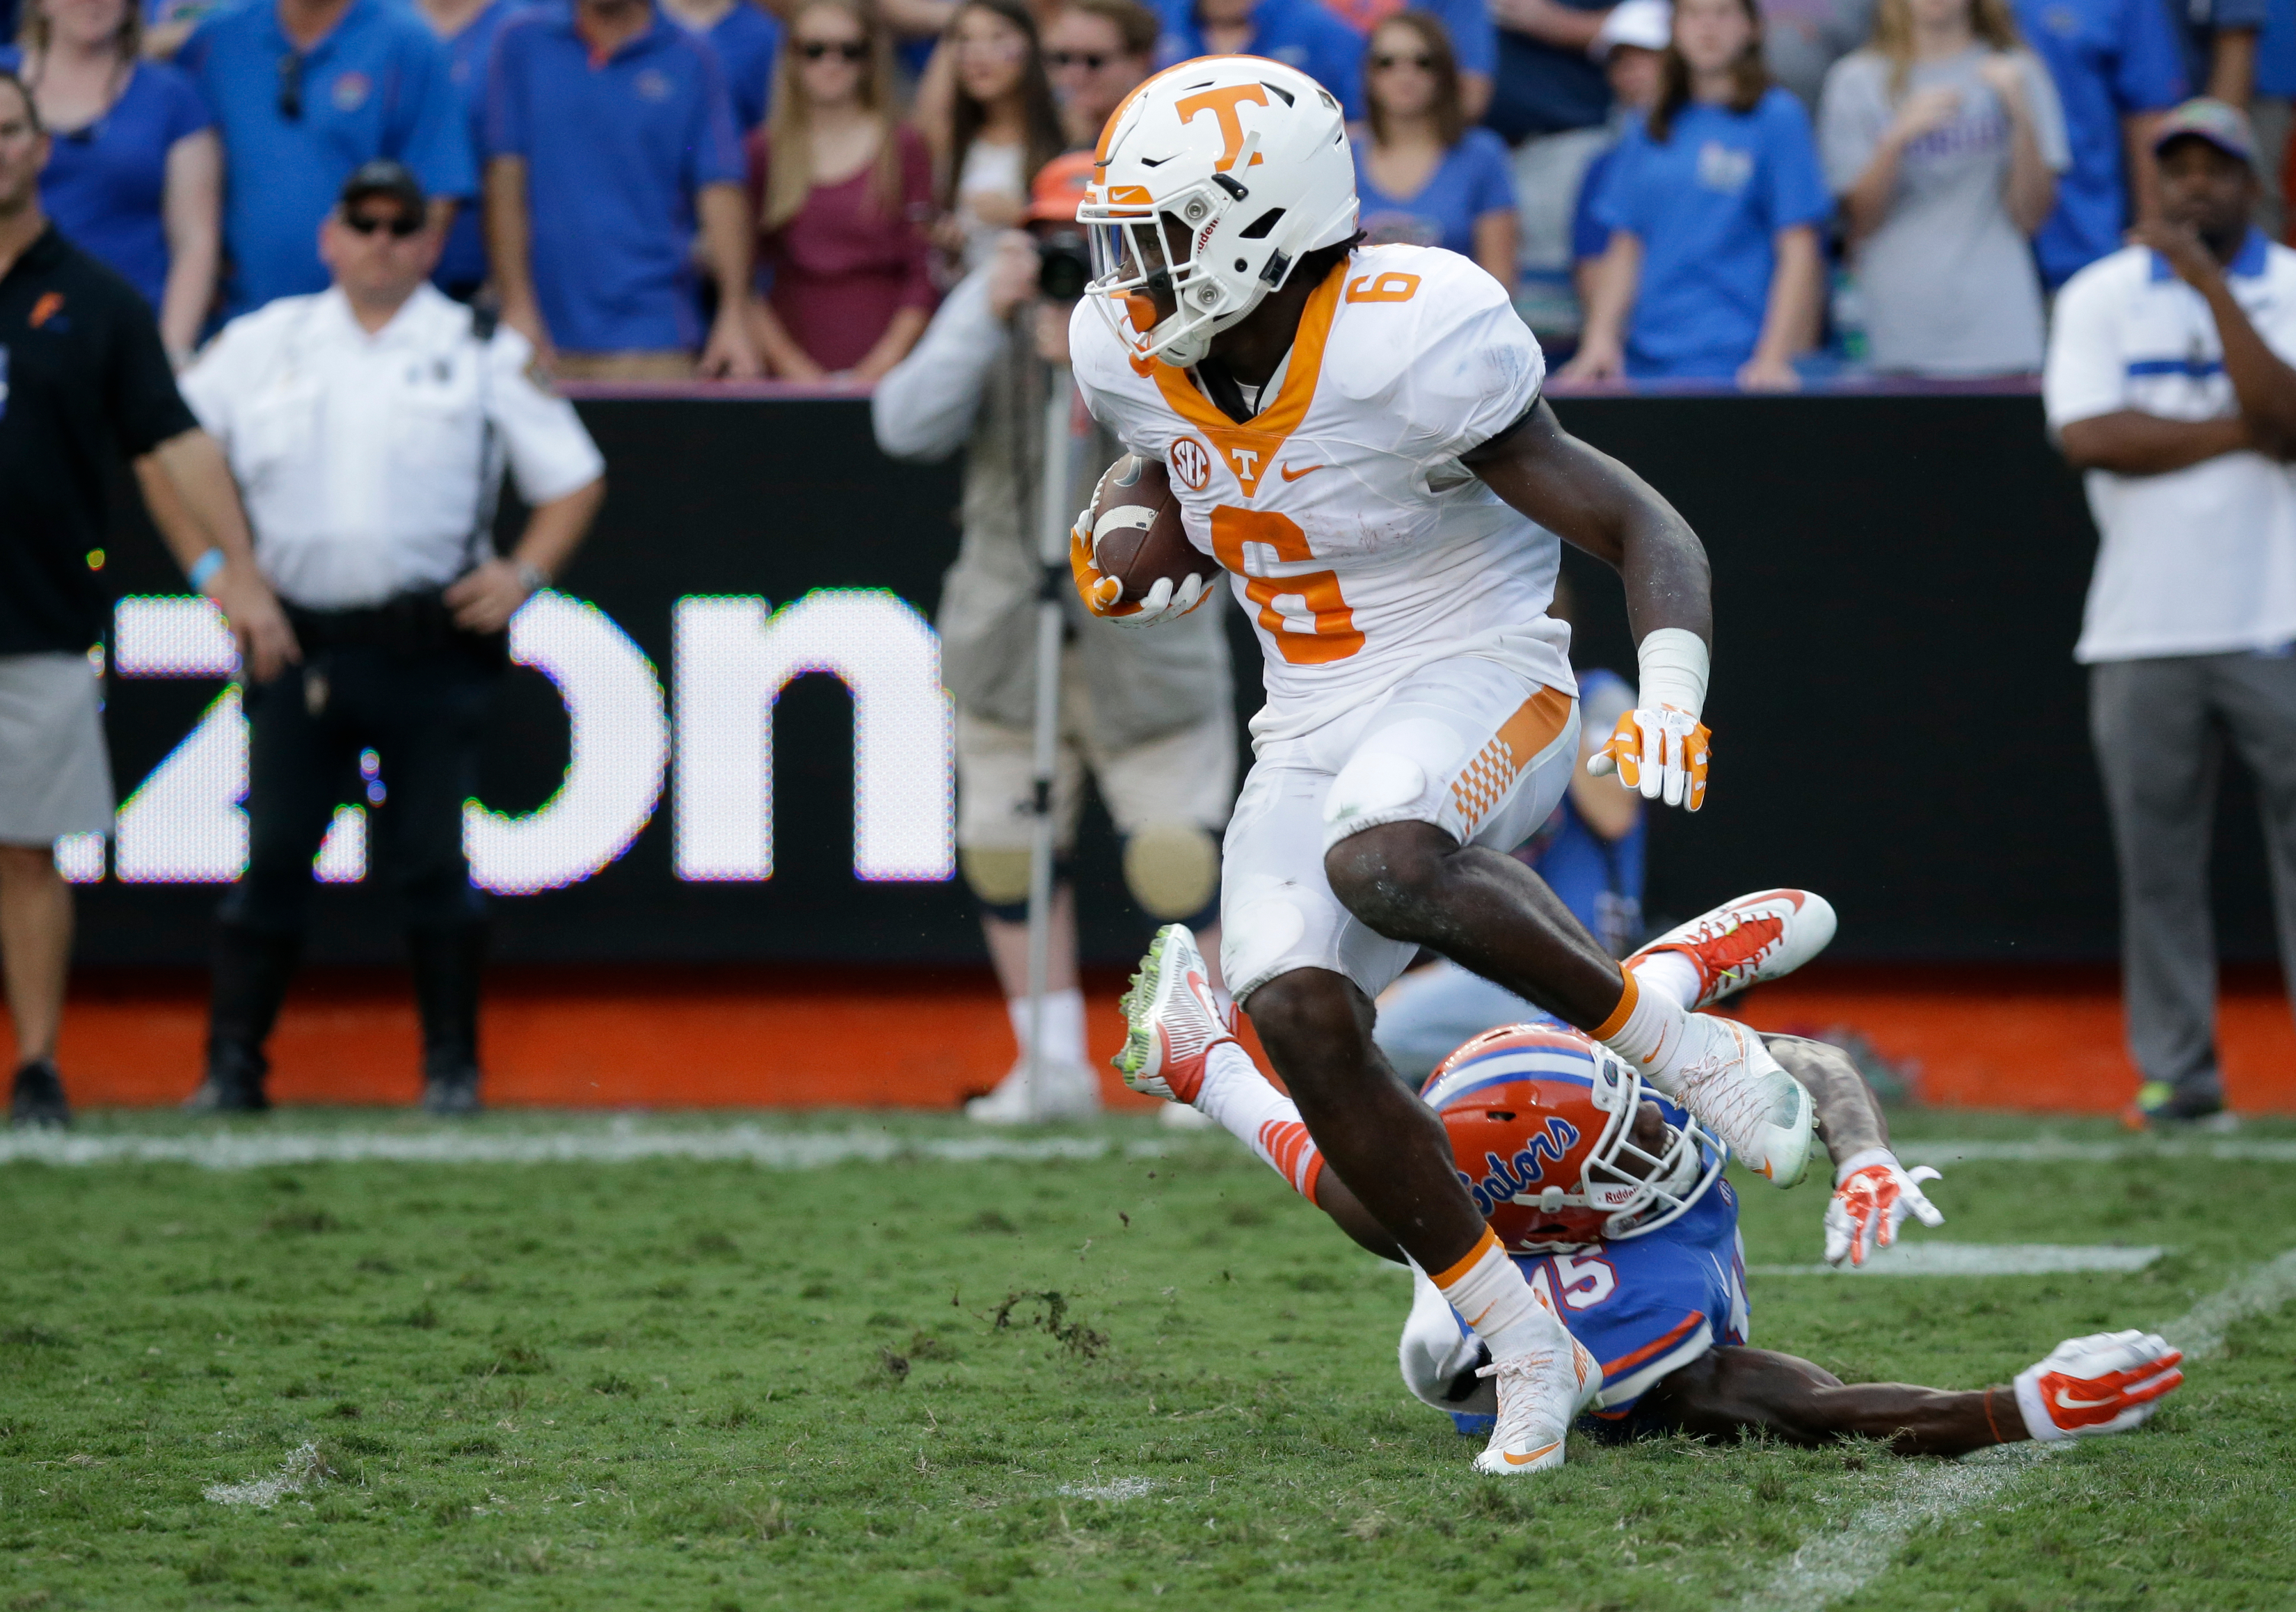 Tennessee running back Alvin Kamara (6) slips past Florida defensive back Deiondre Porter (15) during the second half of an NCAA college football game, Saturday, Sept. 26, 2015, in Gainesville, Fla. (AP Photo/John Raoux)